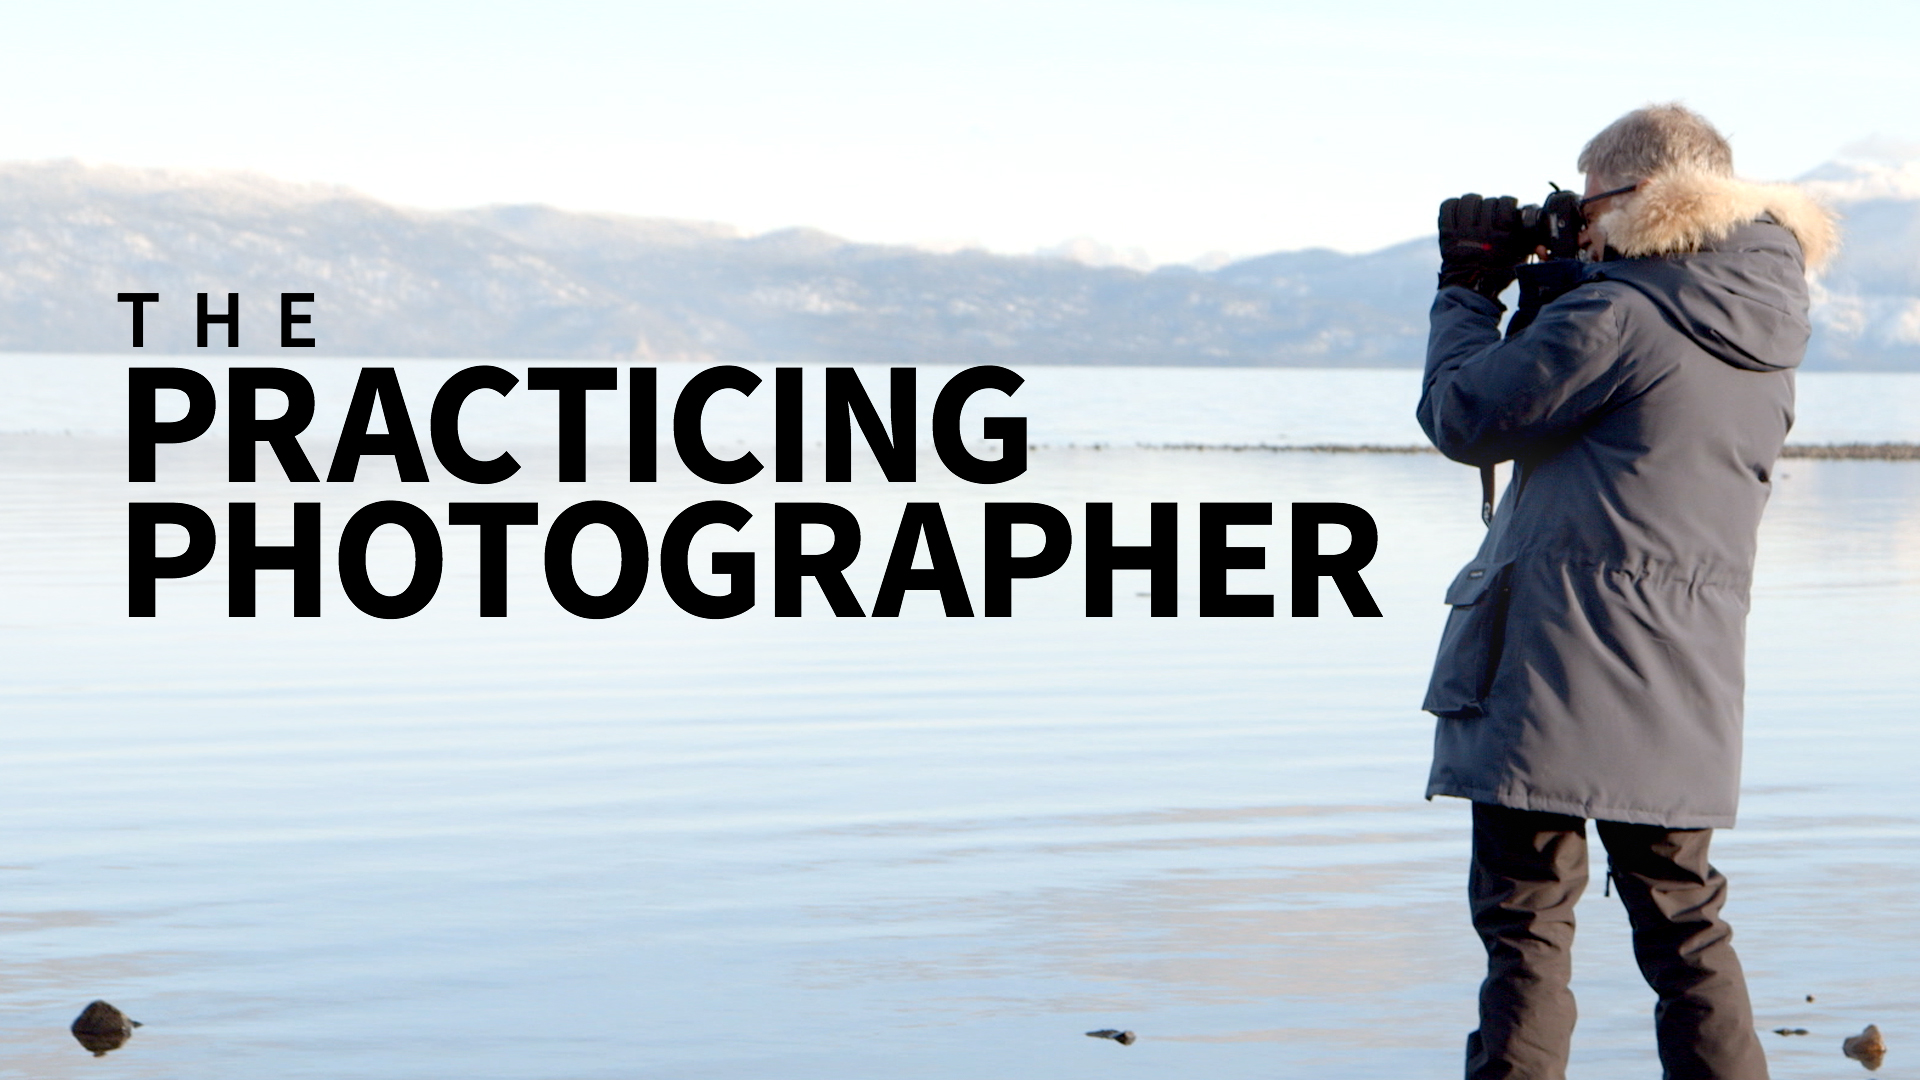 Photo.net - Where Photographers Inspire Each Other